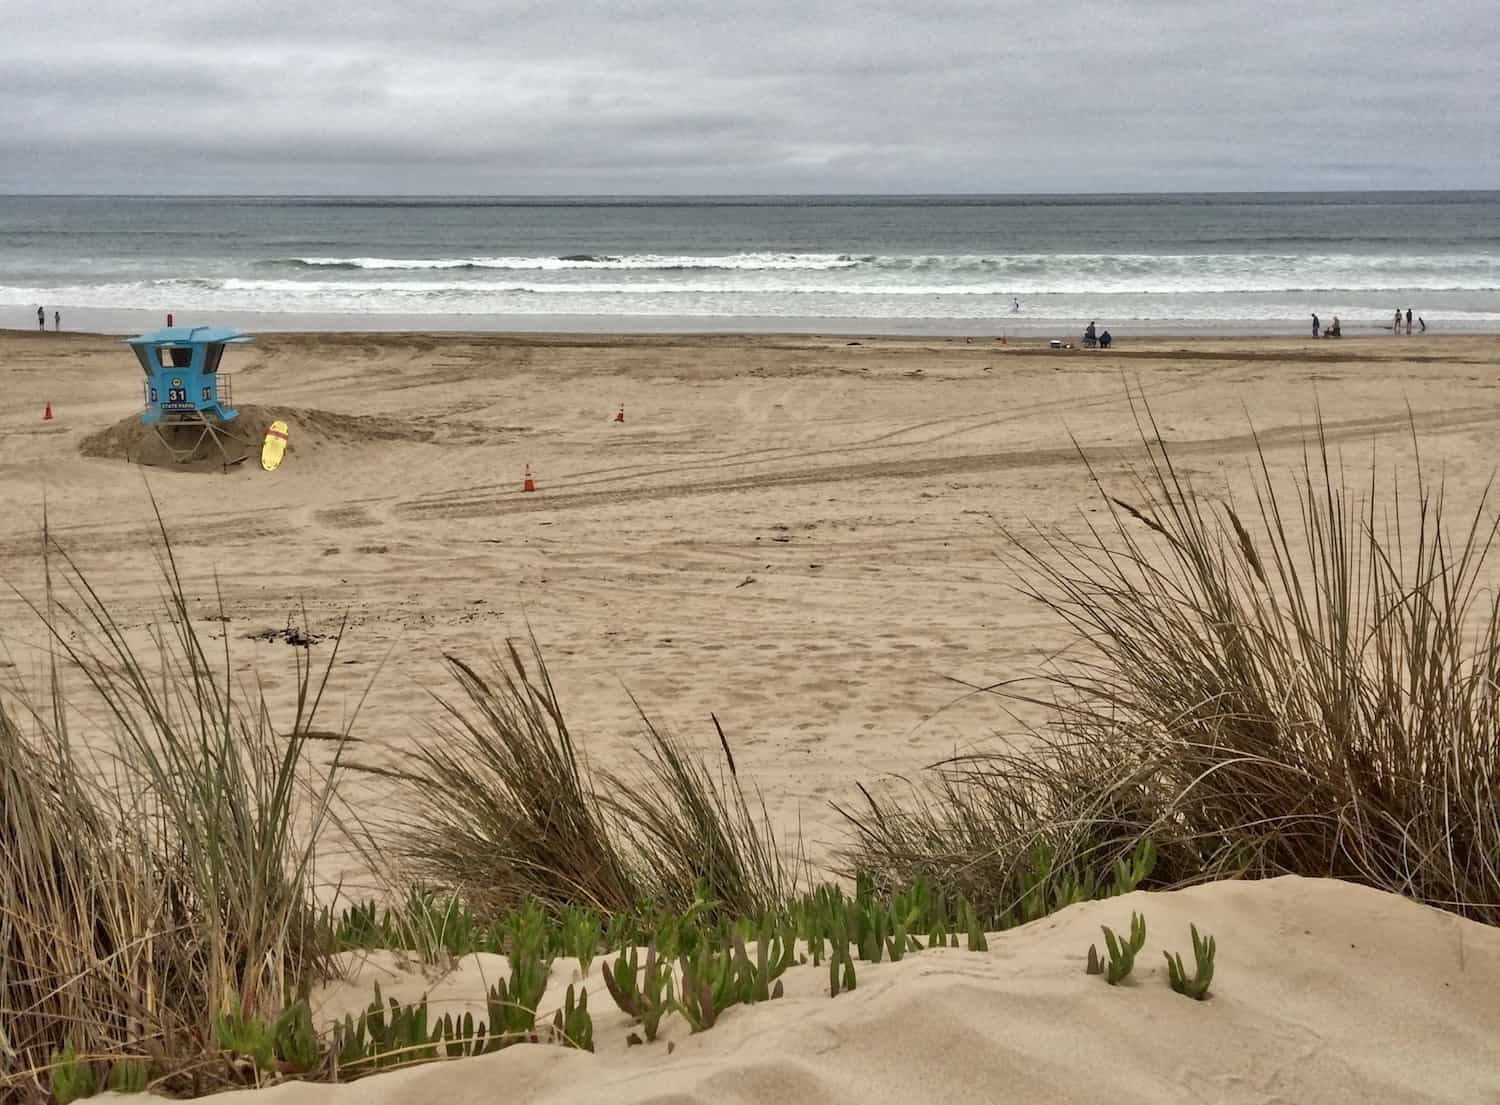 Calfornia Coast Road Trip - Pismo Beach